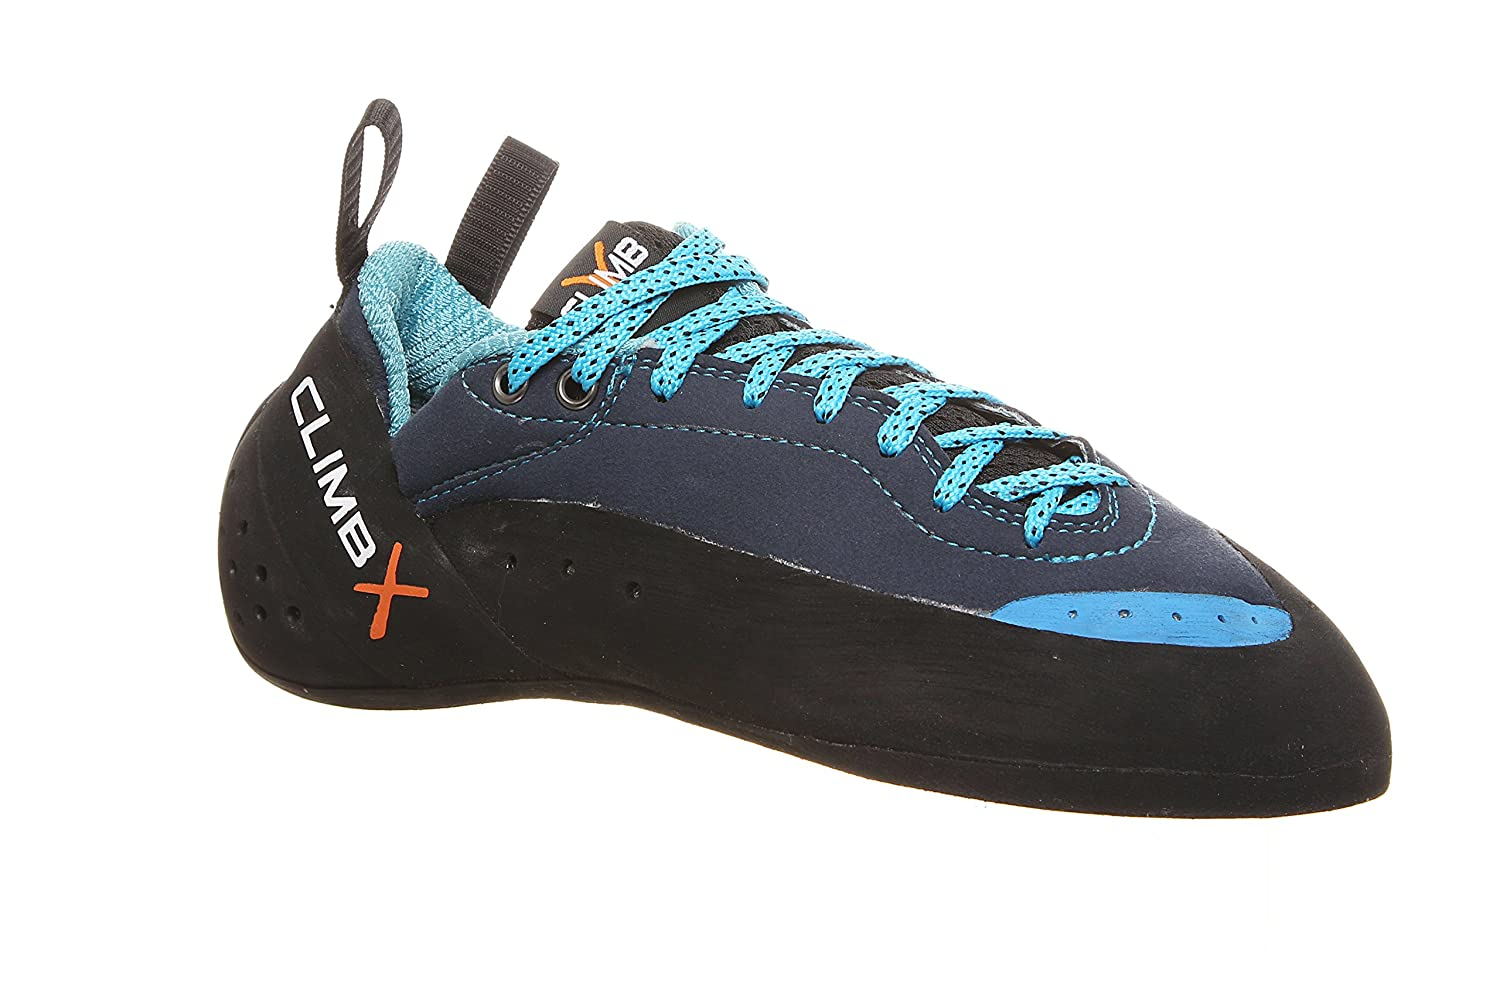 Climb X Crush Lace Climbing Shoe with FREE Sickle M-16 Climbing Brush